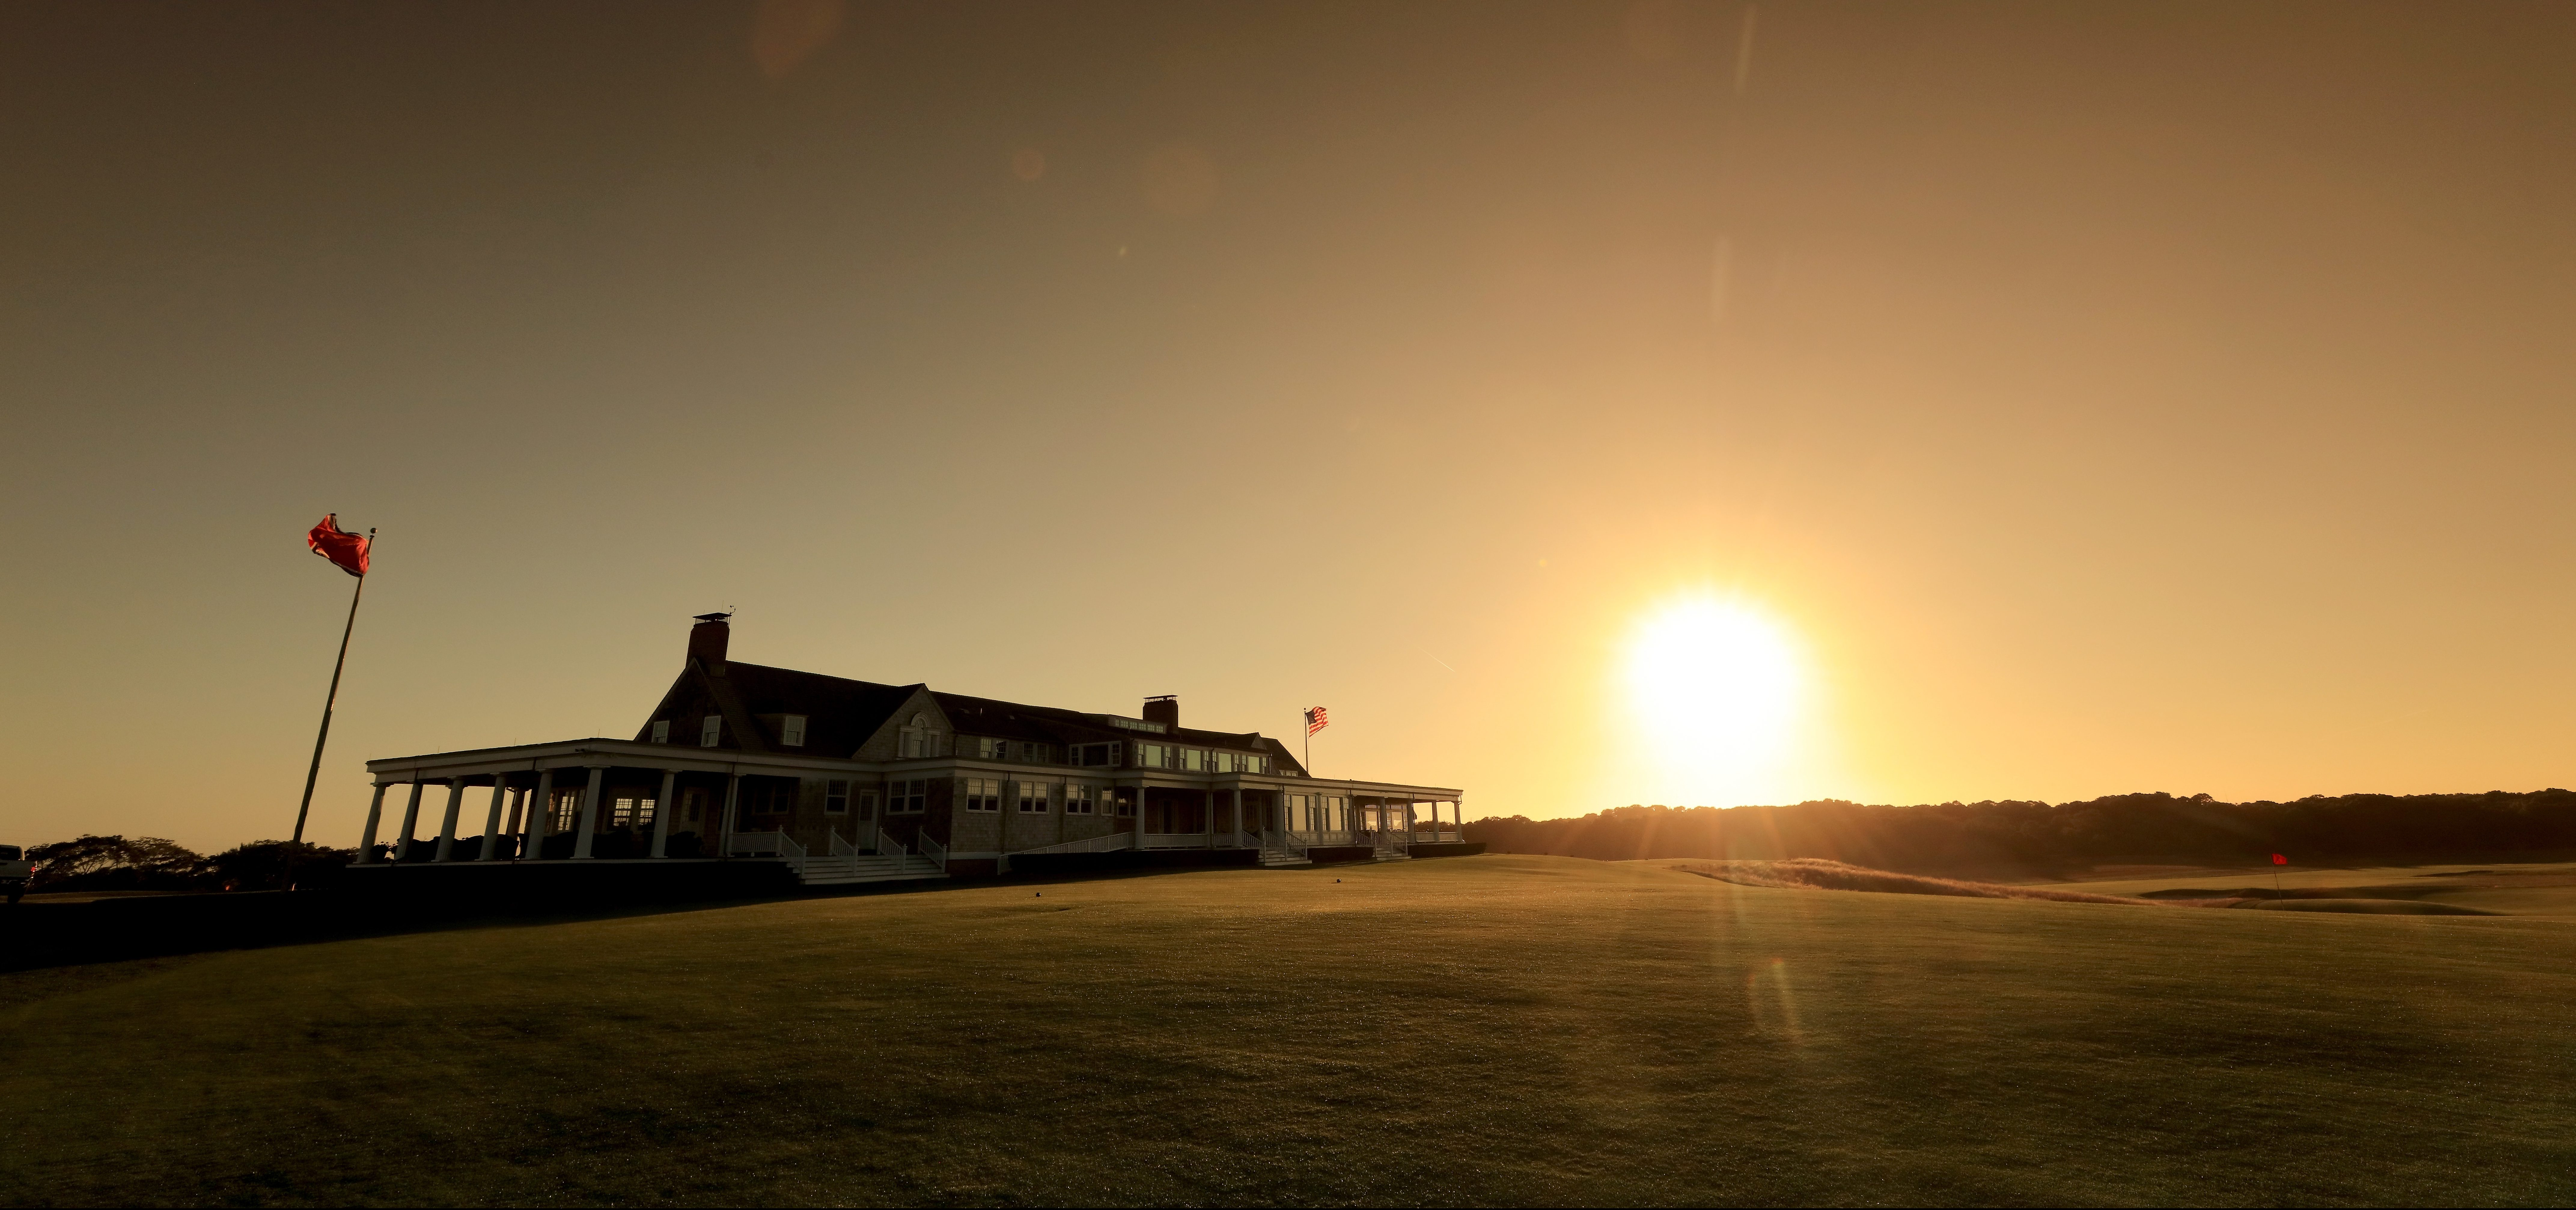 SOUTHAMPTON, NY - OCTOBER 04: EDITORS NOTE: Polarising filter used on the camera in this image; The clubhouse at sunset at Shinnecock Hills Golf Club the host venue for the 2018 US Open Championship on October 4, 2017 in Southampton, New York. (Photo by David Cannon/Getty Images)